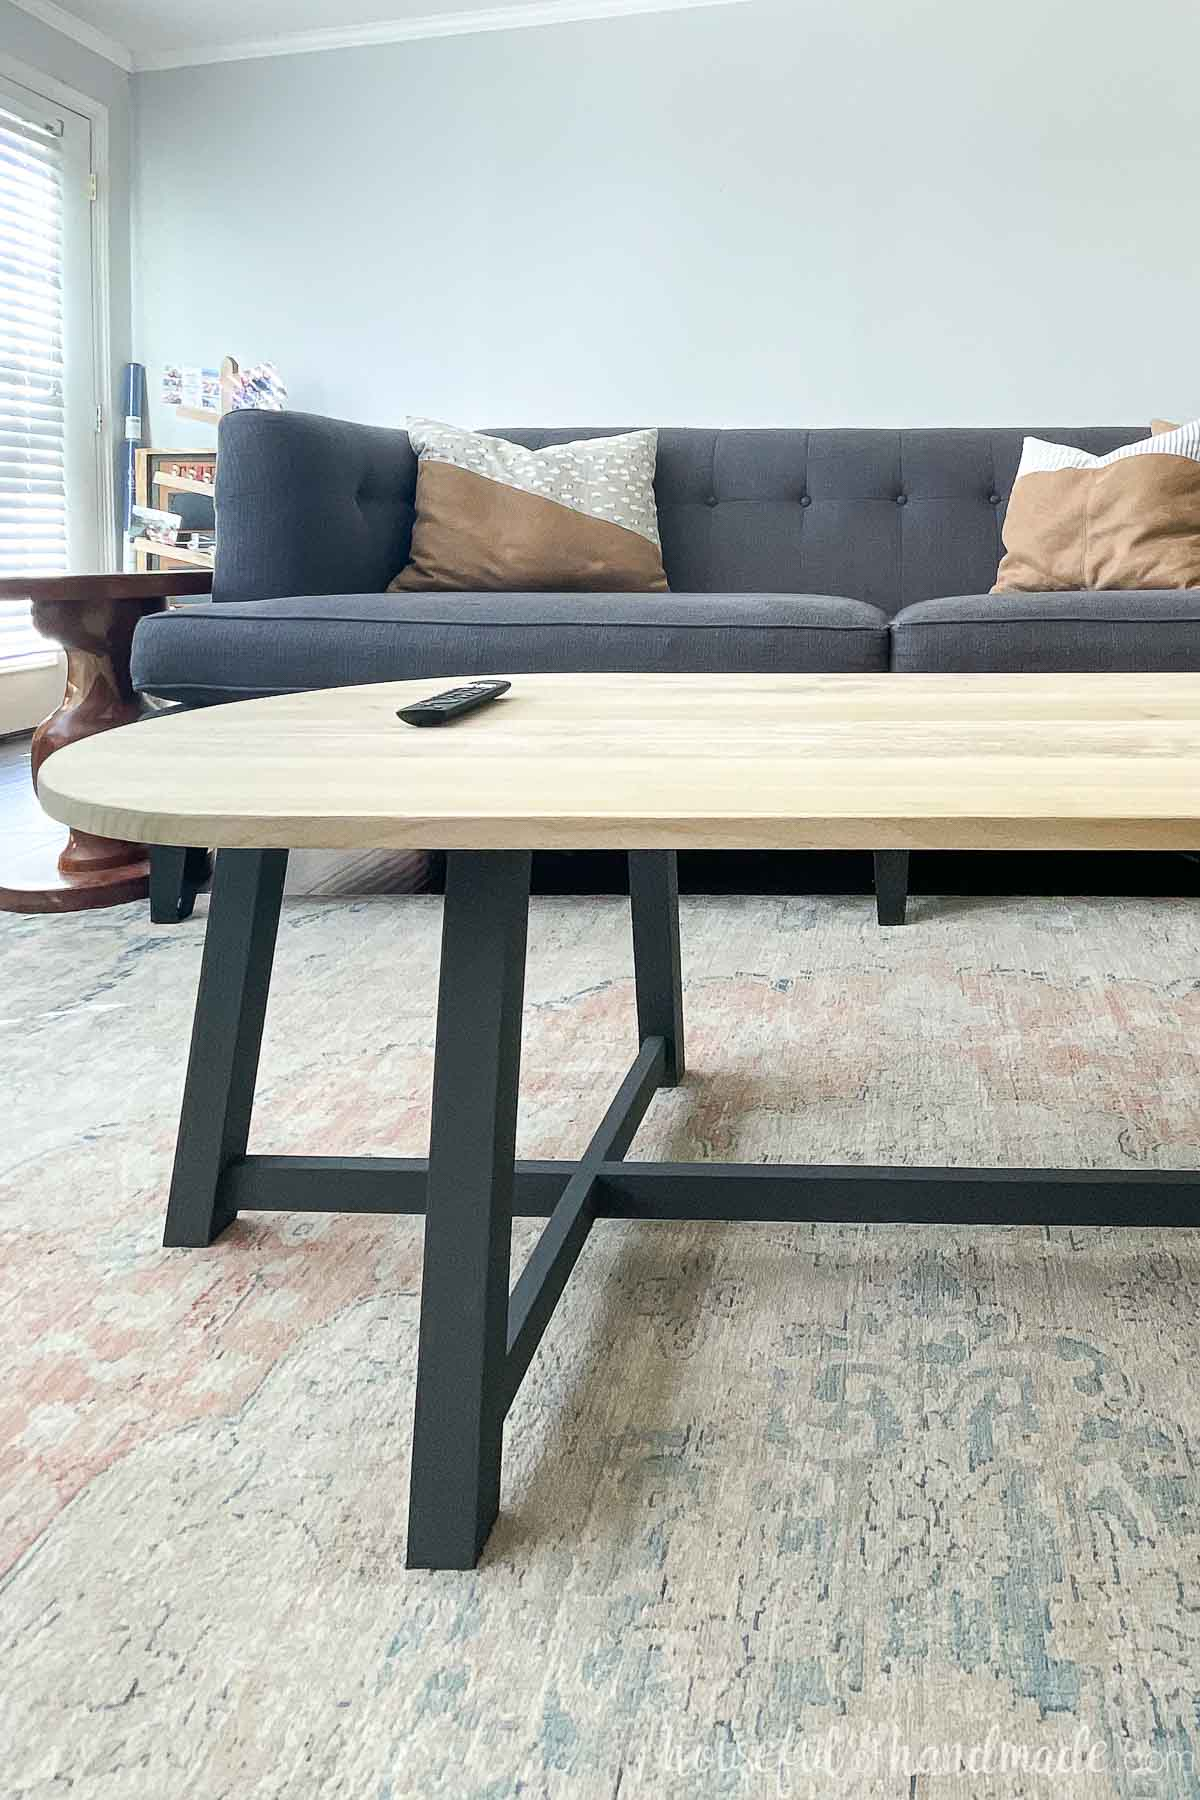 Close up of the left side of the coffee table in front of the sofa with a charcoal painted base.